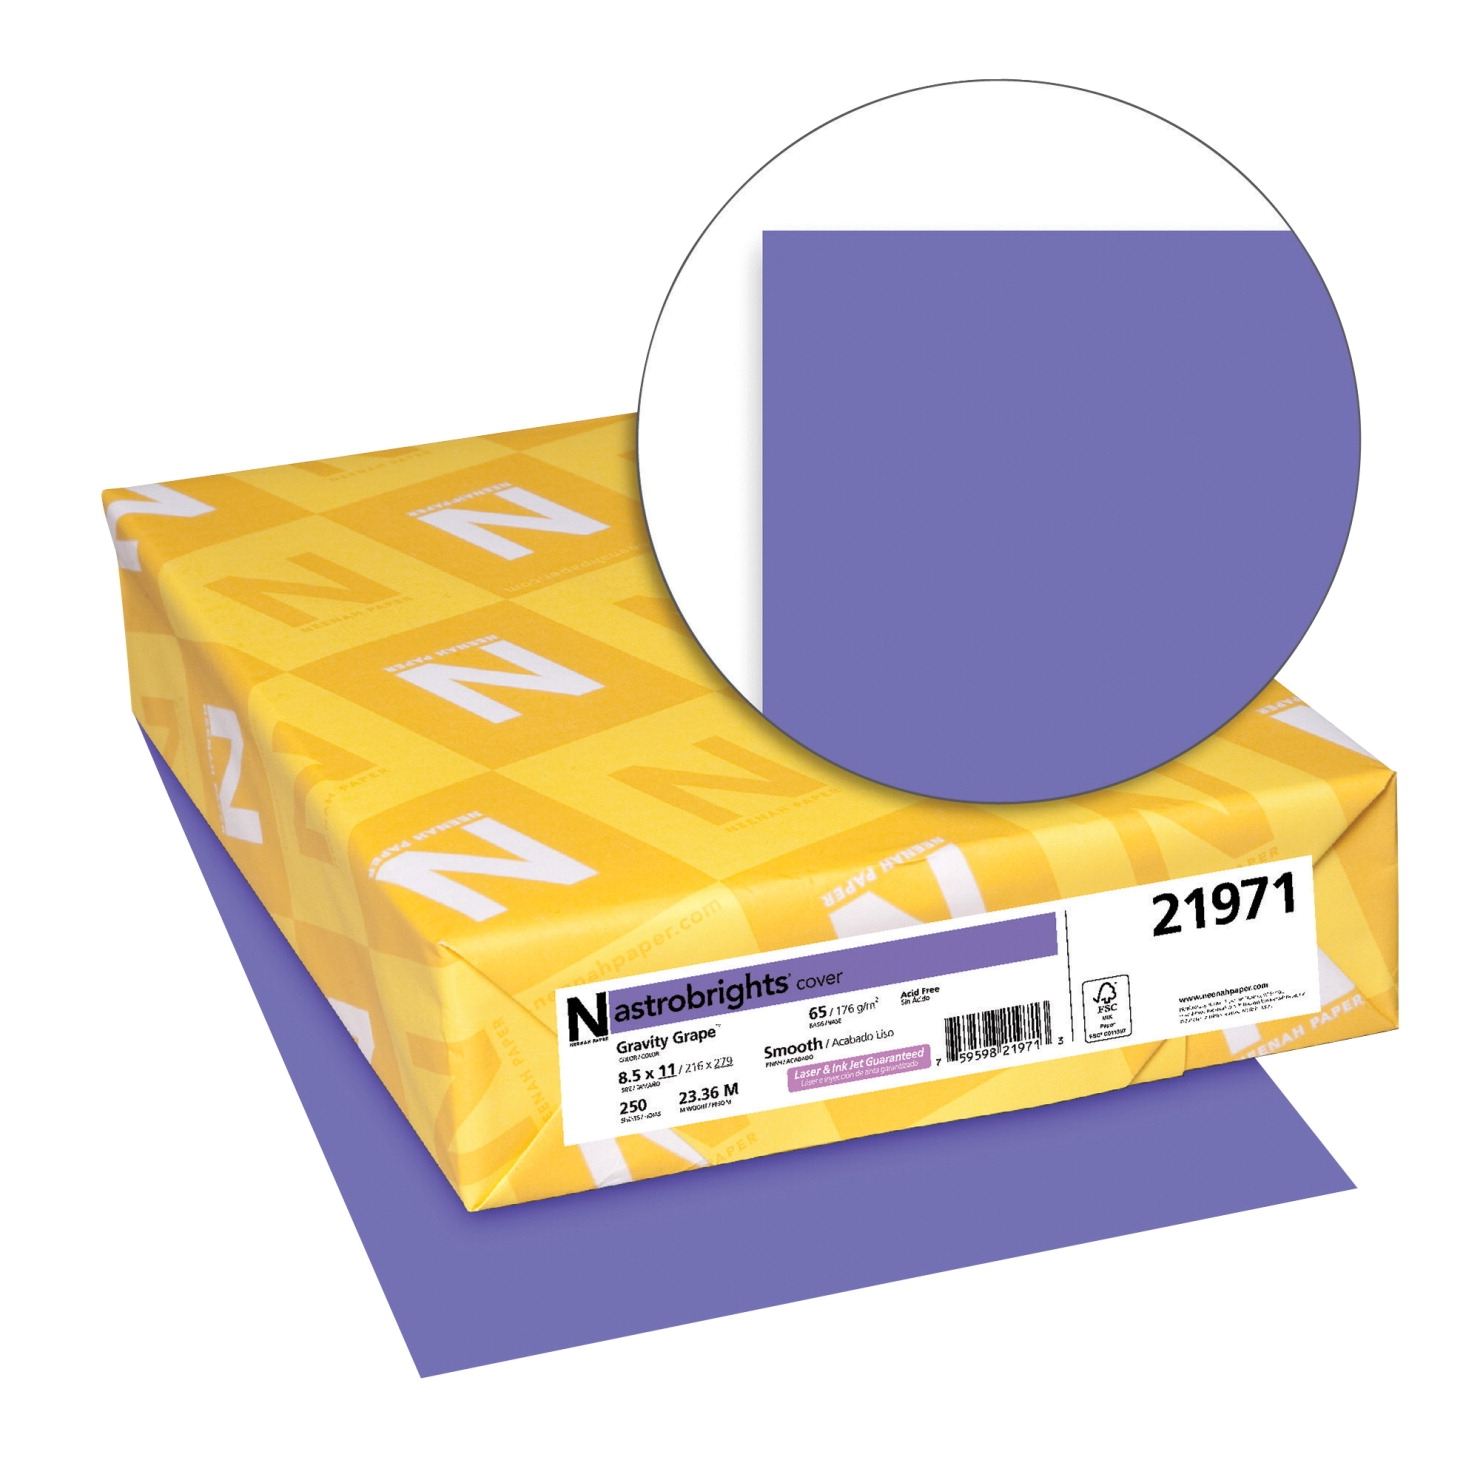 Facilities Management Dog Products Feeding Supplies - 1453185 - Astrobrights Paper Card Stock; 8-1/2 X 11 In; 65 Lb; Gravity Grape; Pack Of 250 1453185